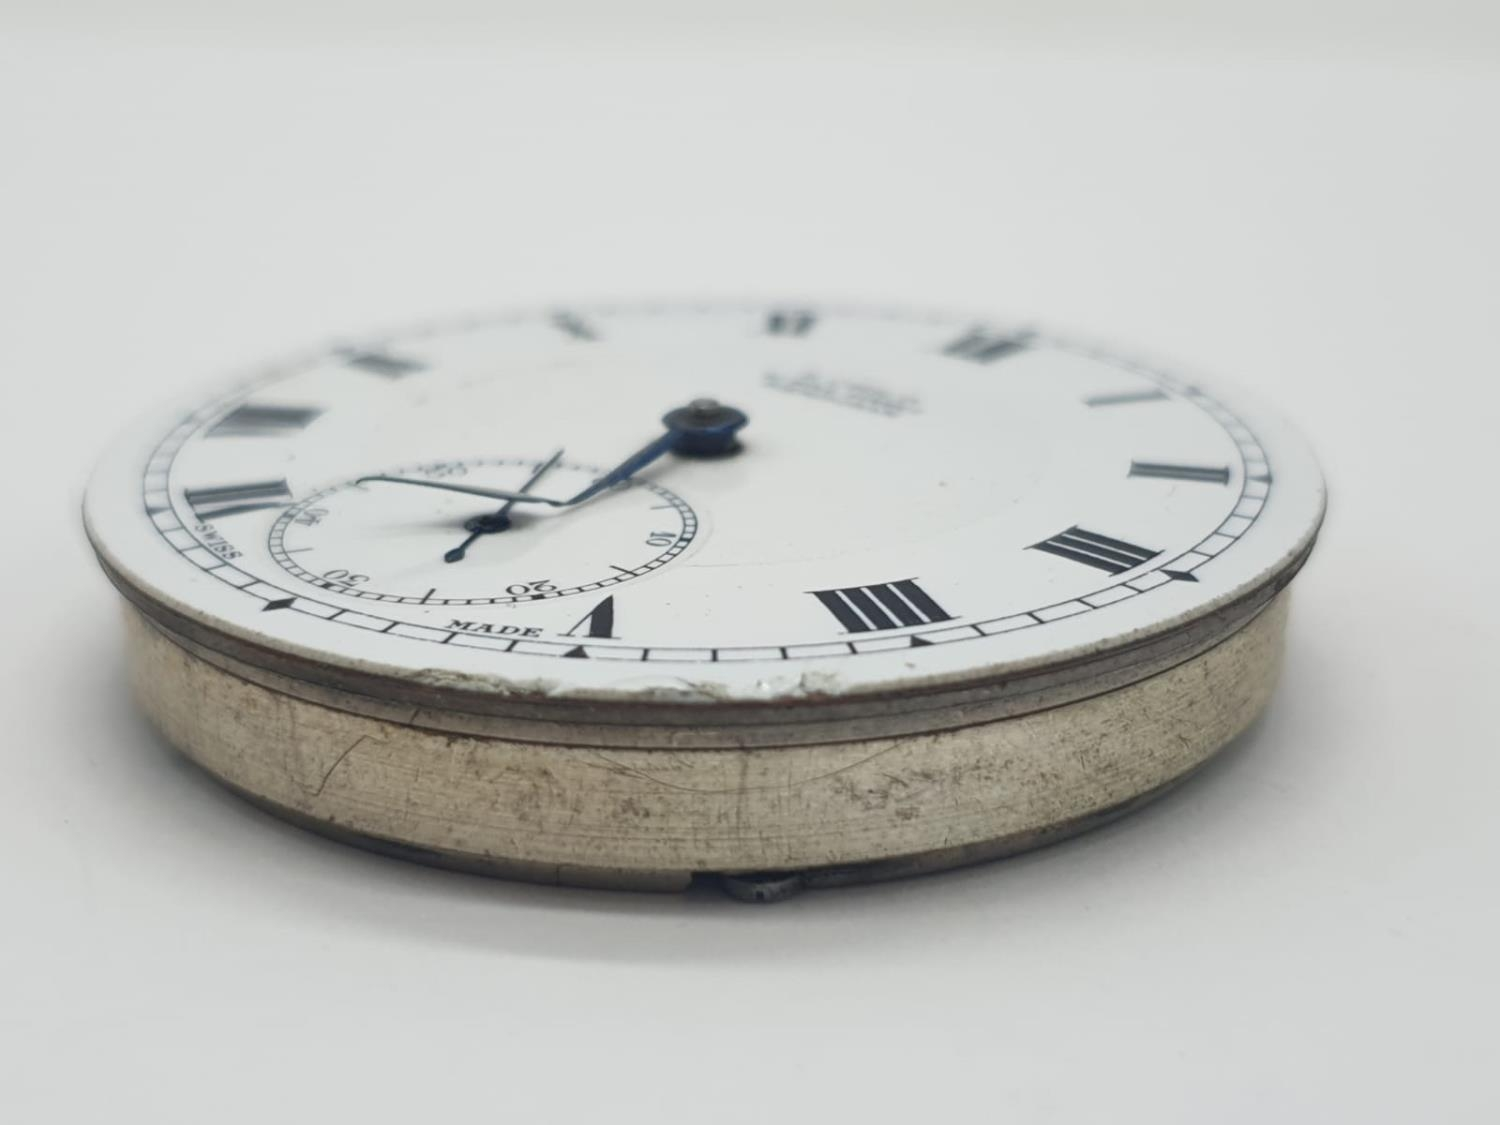 3 x Pocket Watch Movements. 3.0 , 3.5 and 4.5 cm. - Image 6 of 10